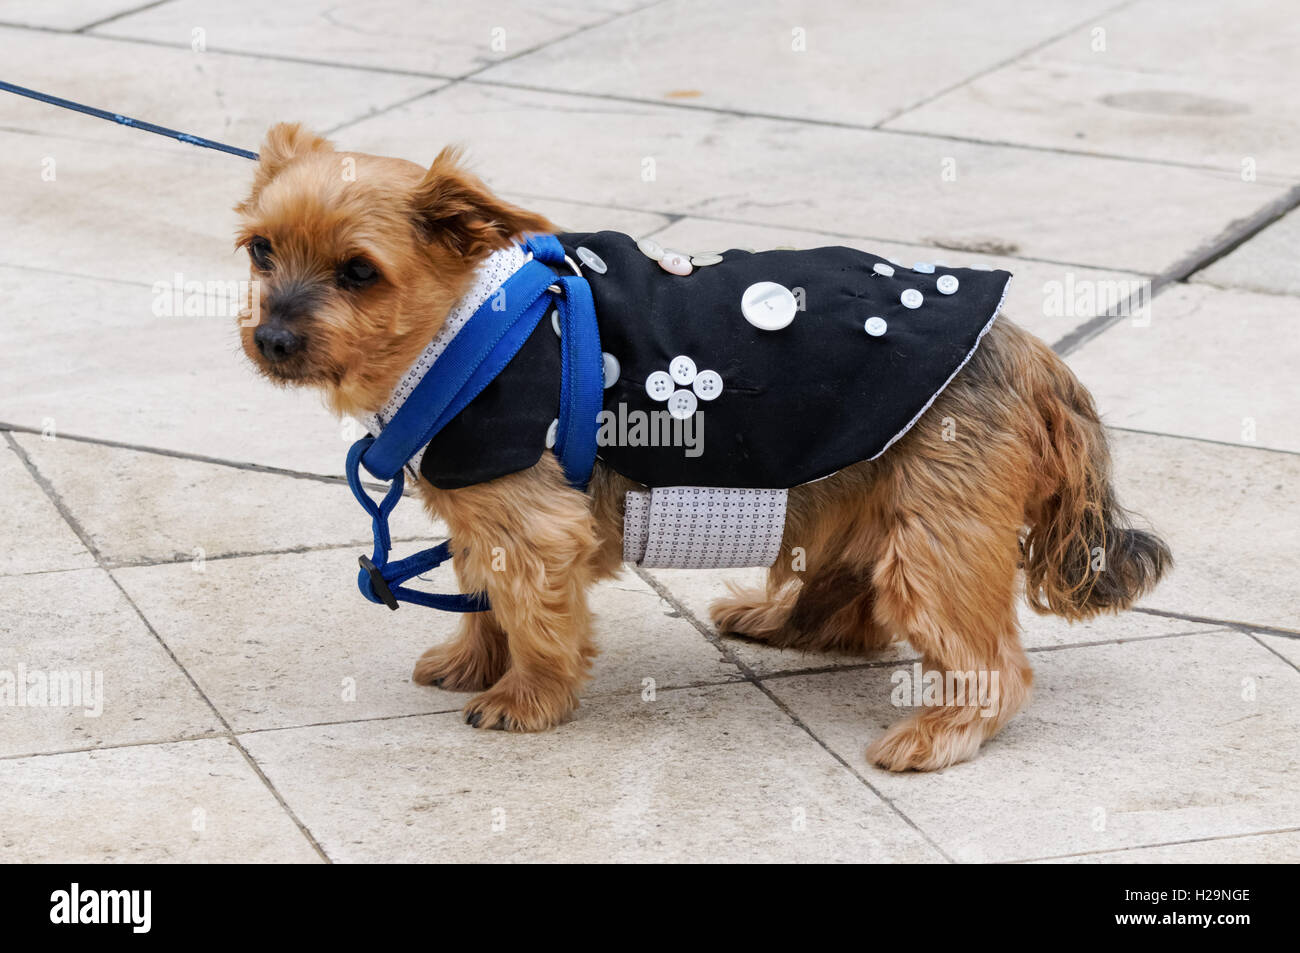 Dog at Pearly Kings and Queens Harvest Festival at Guildhall Yard, London England United Kingdom UK - Stock Image